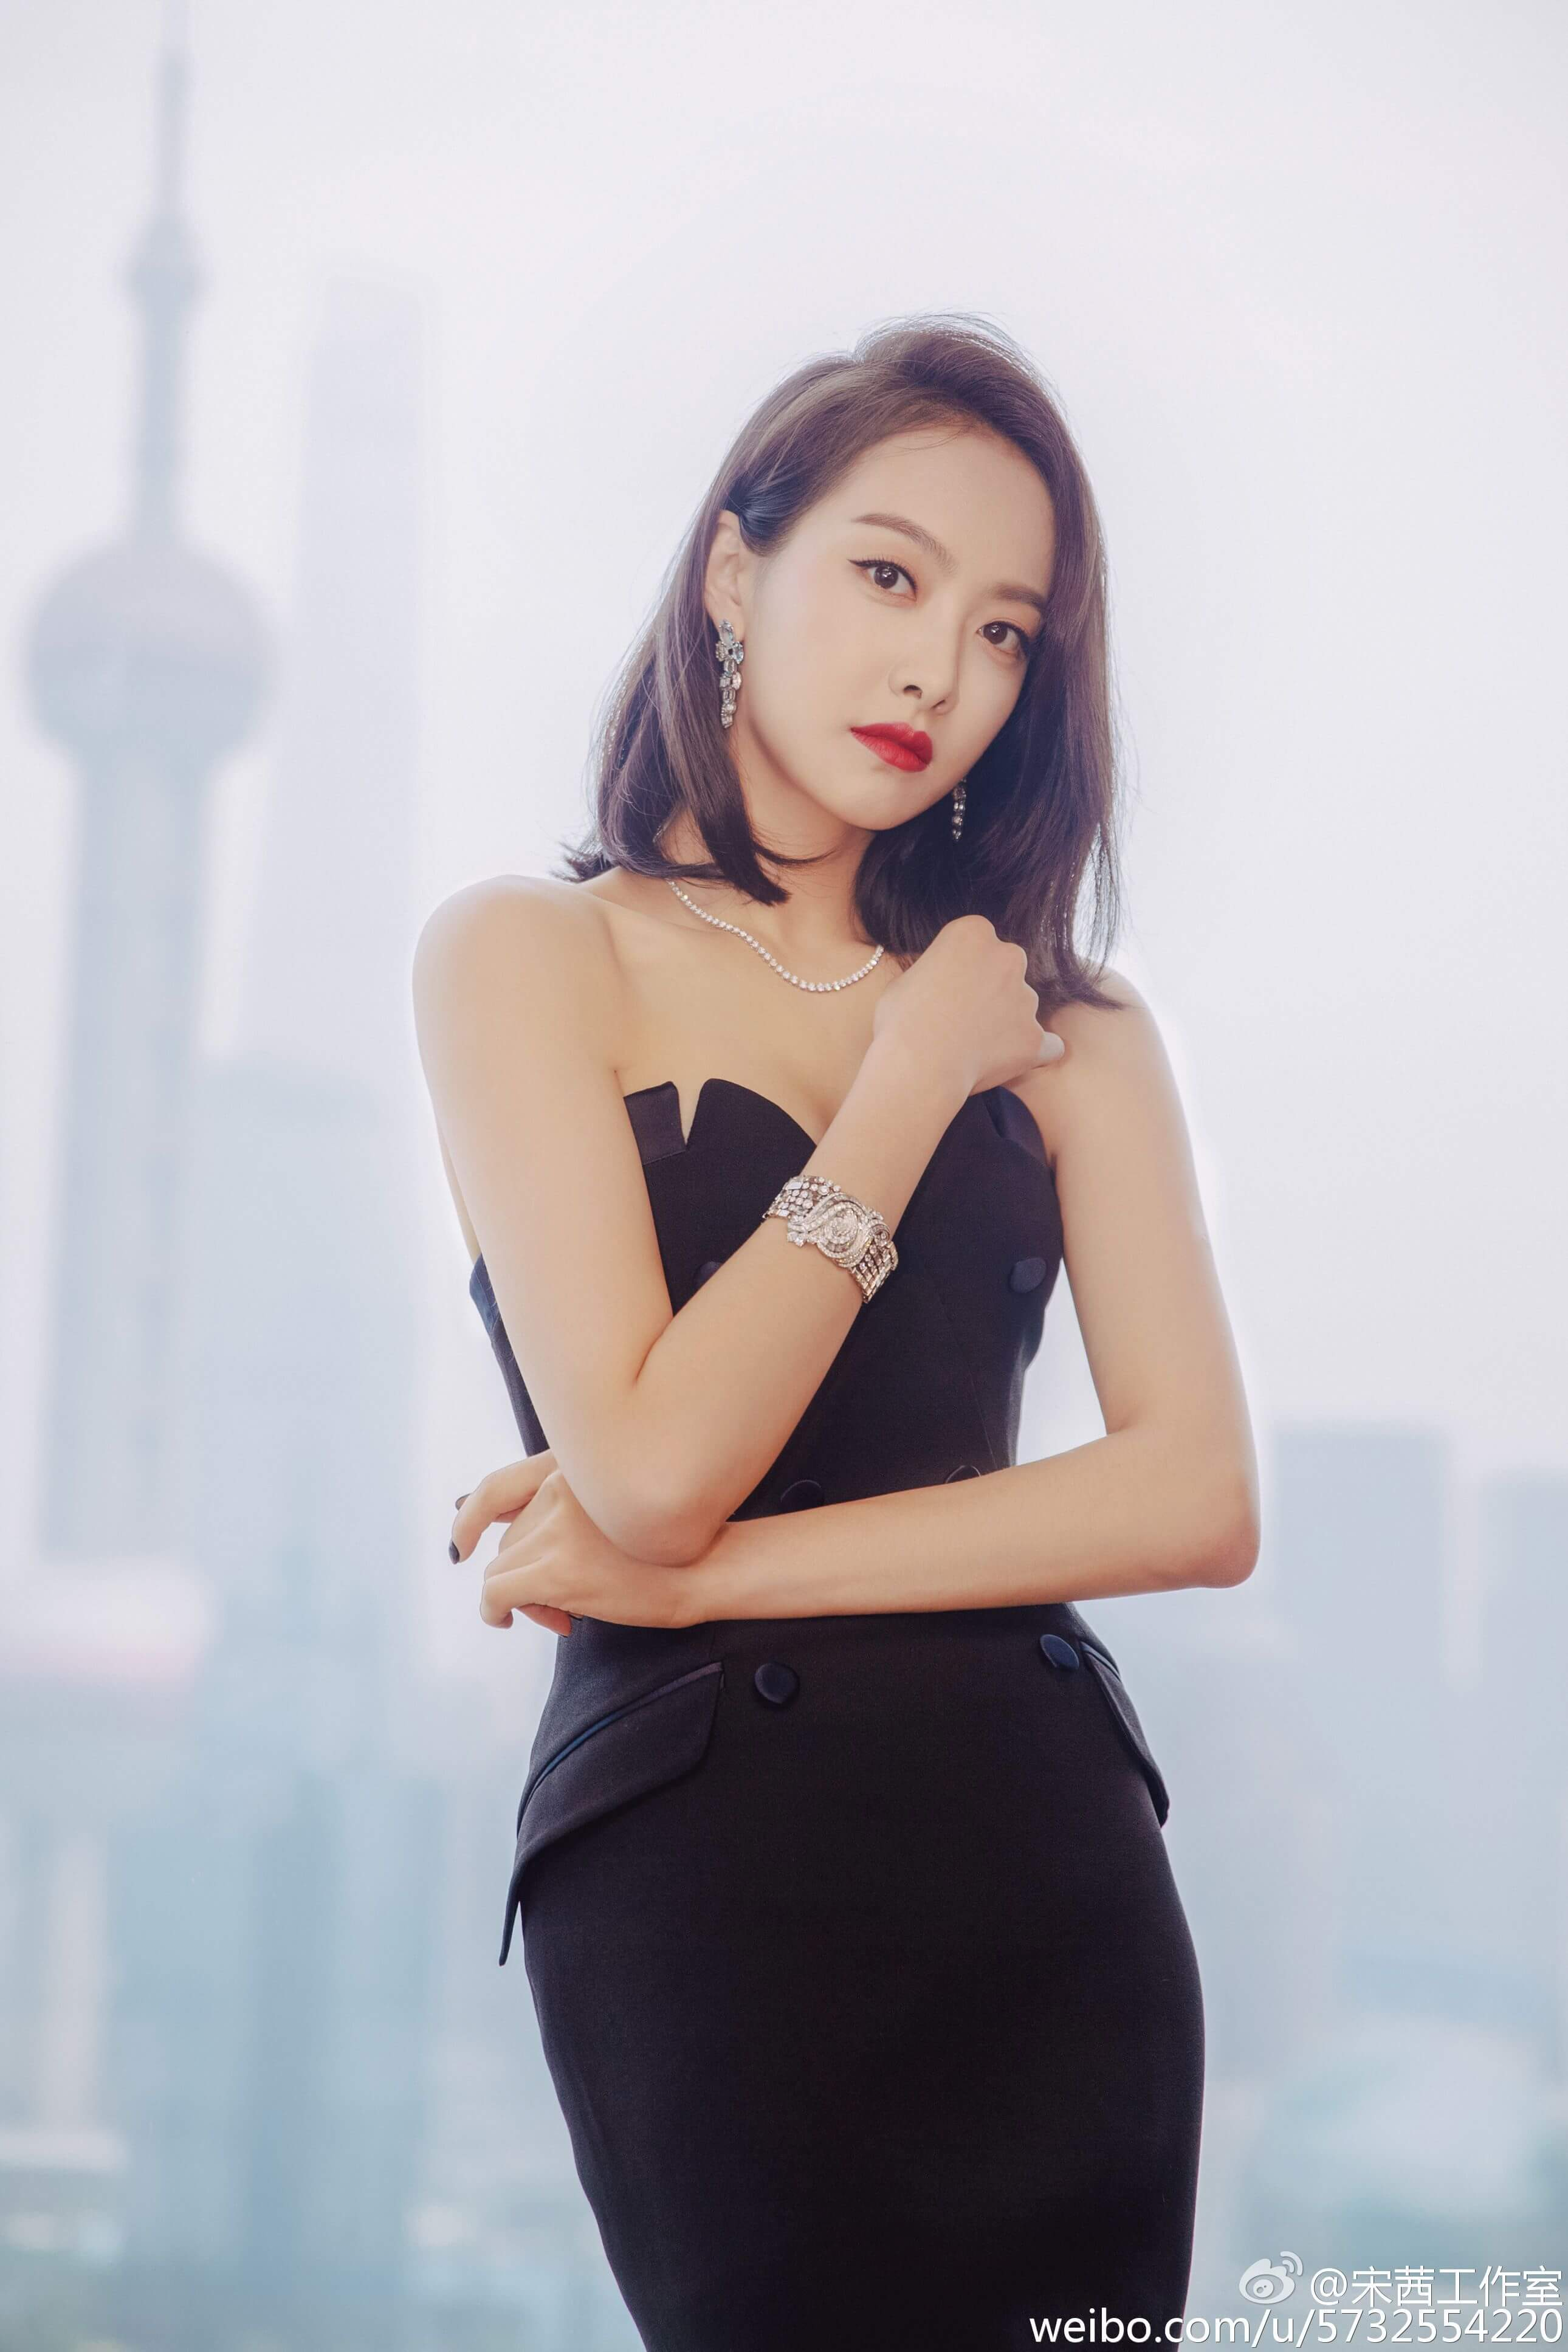 Victoria Song hot pictures